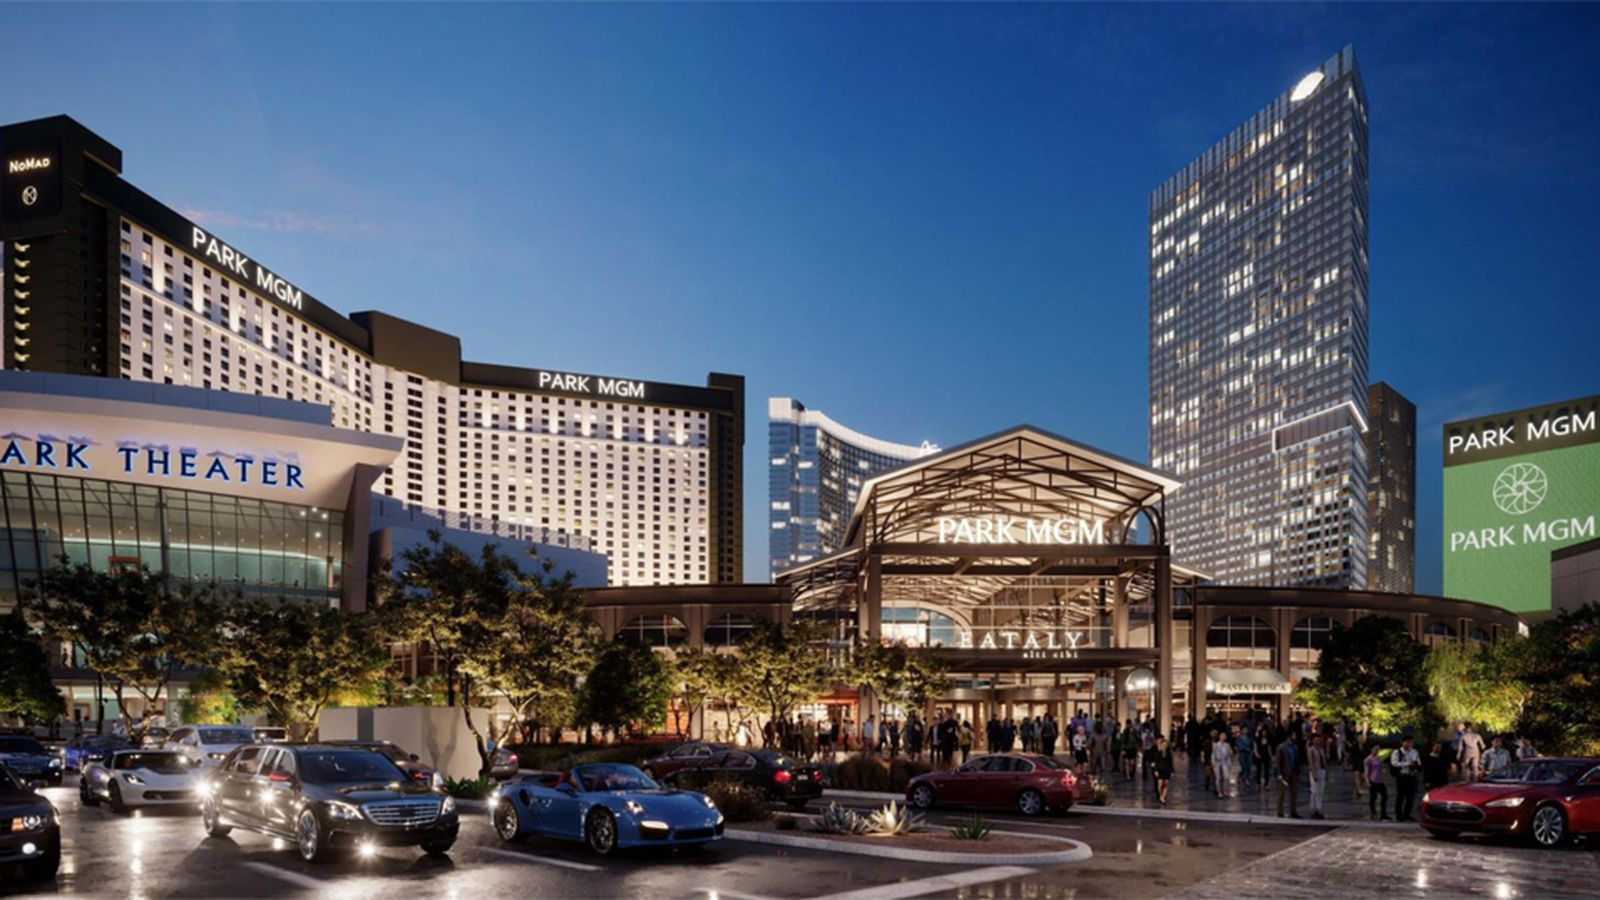 Behold Eataly A New Strip Bridge And The Park Mgm